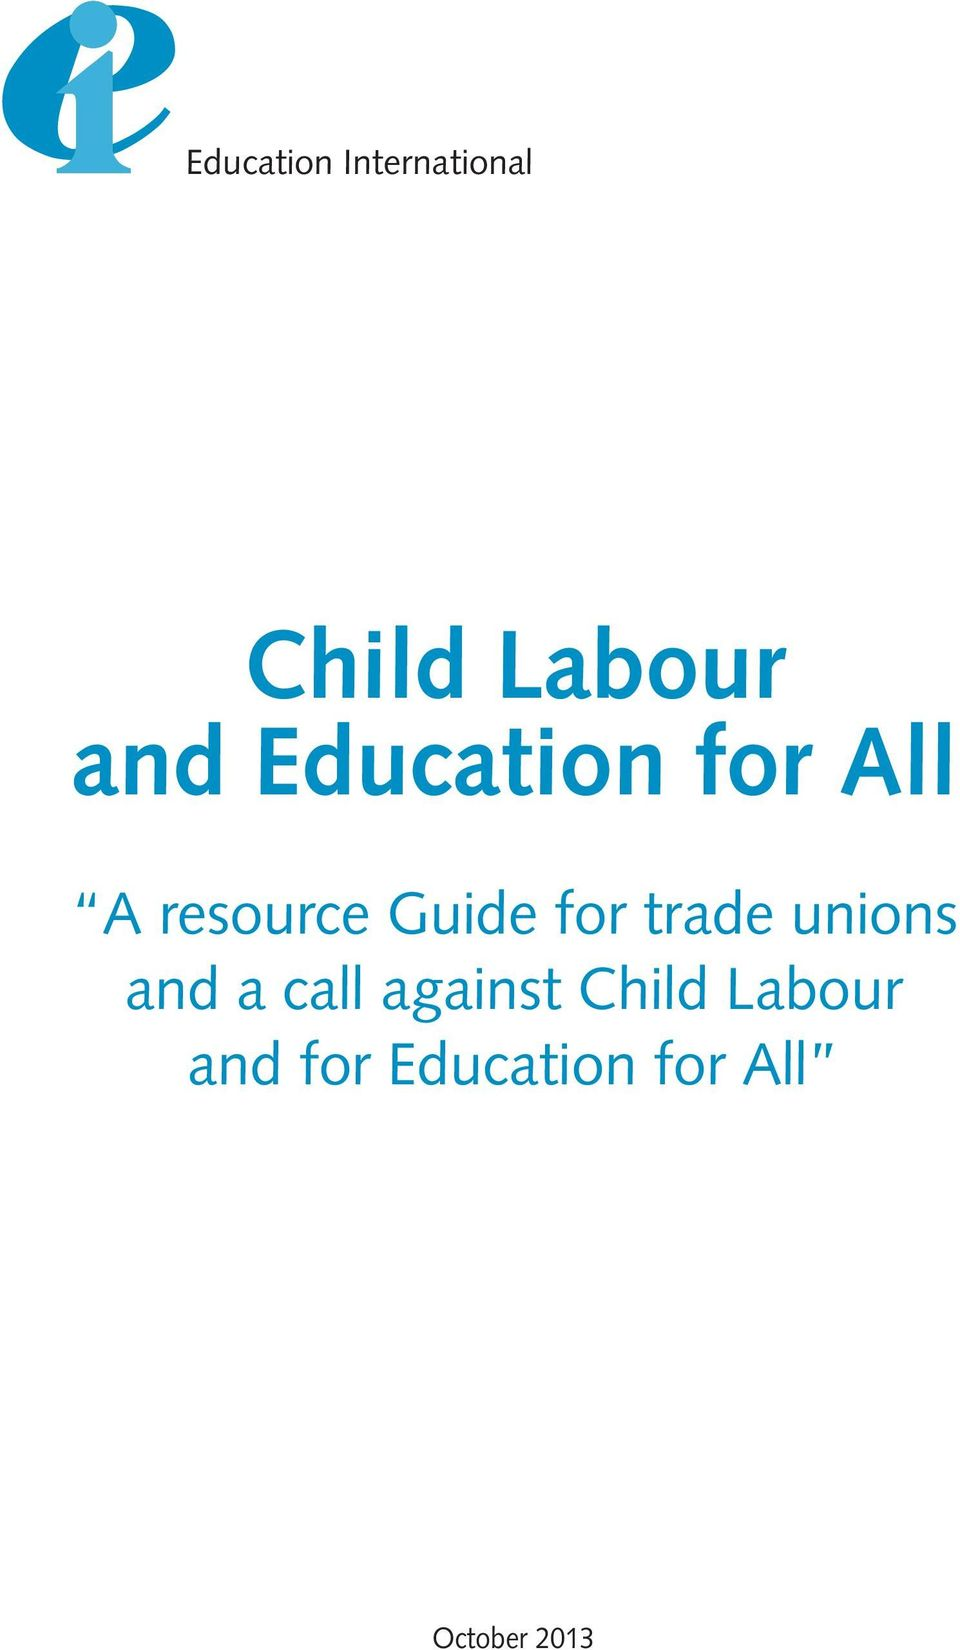 trade unions and a call against Child